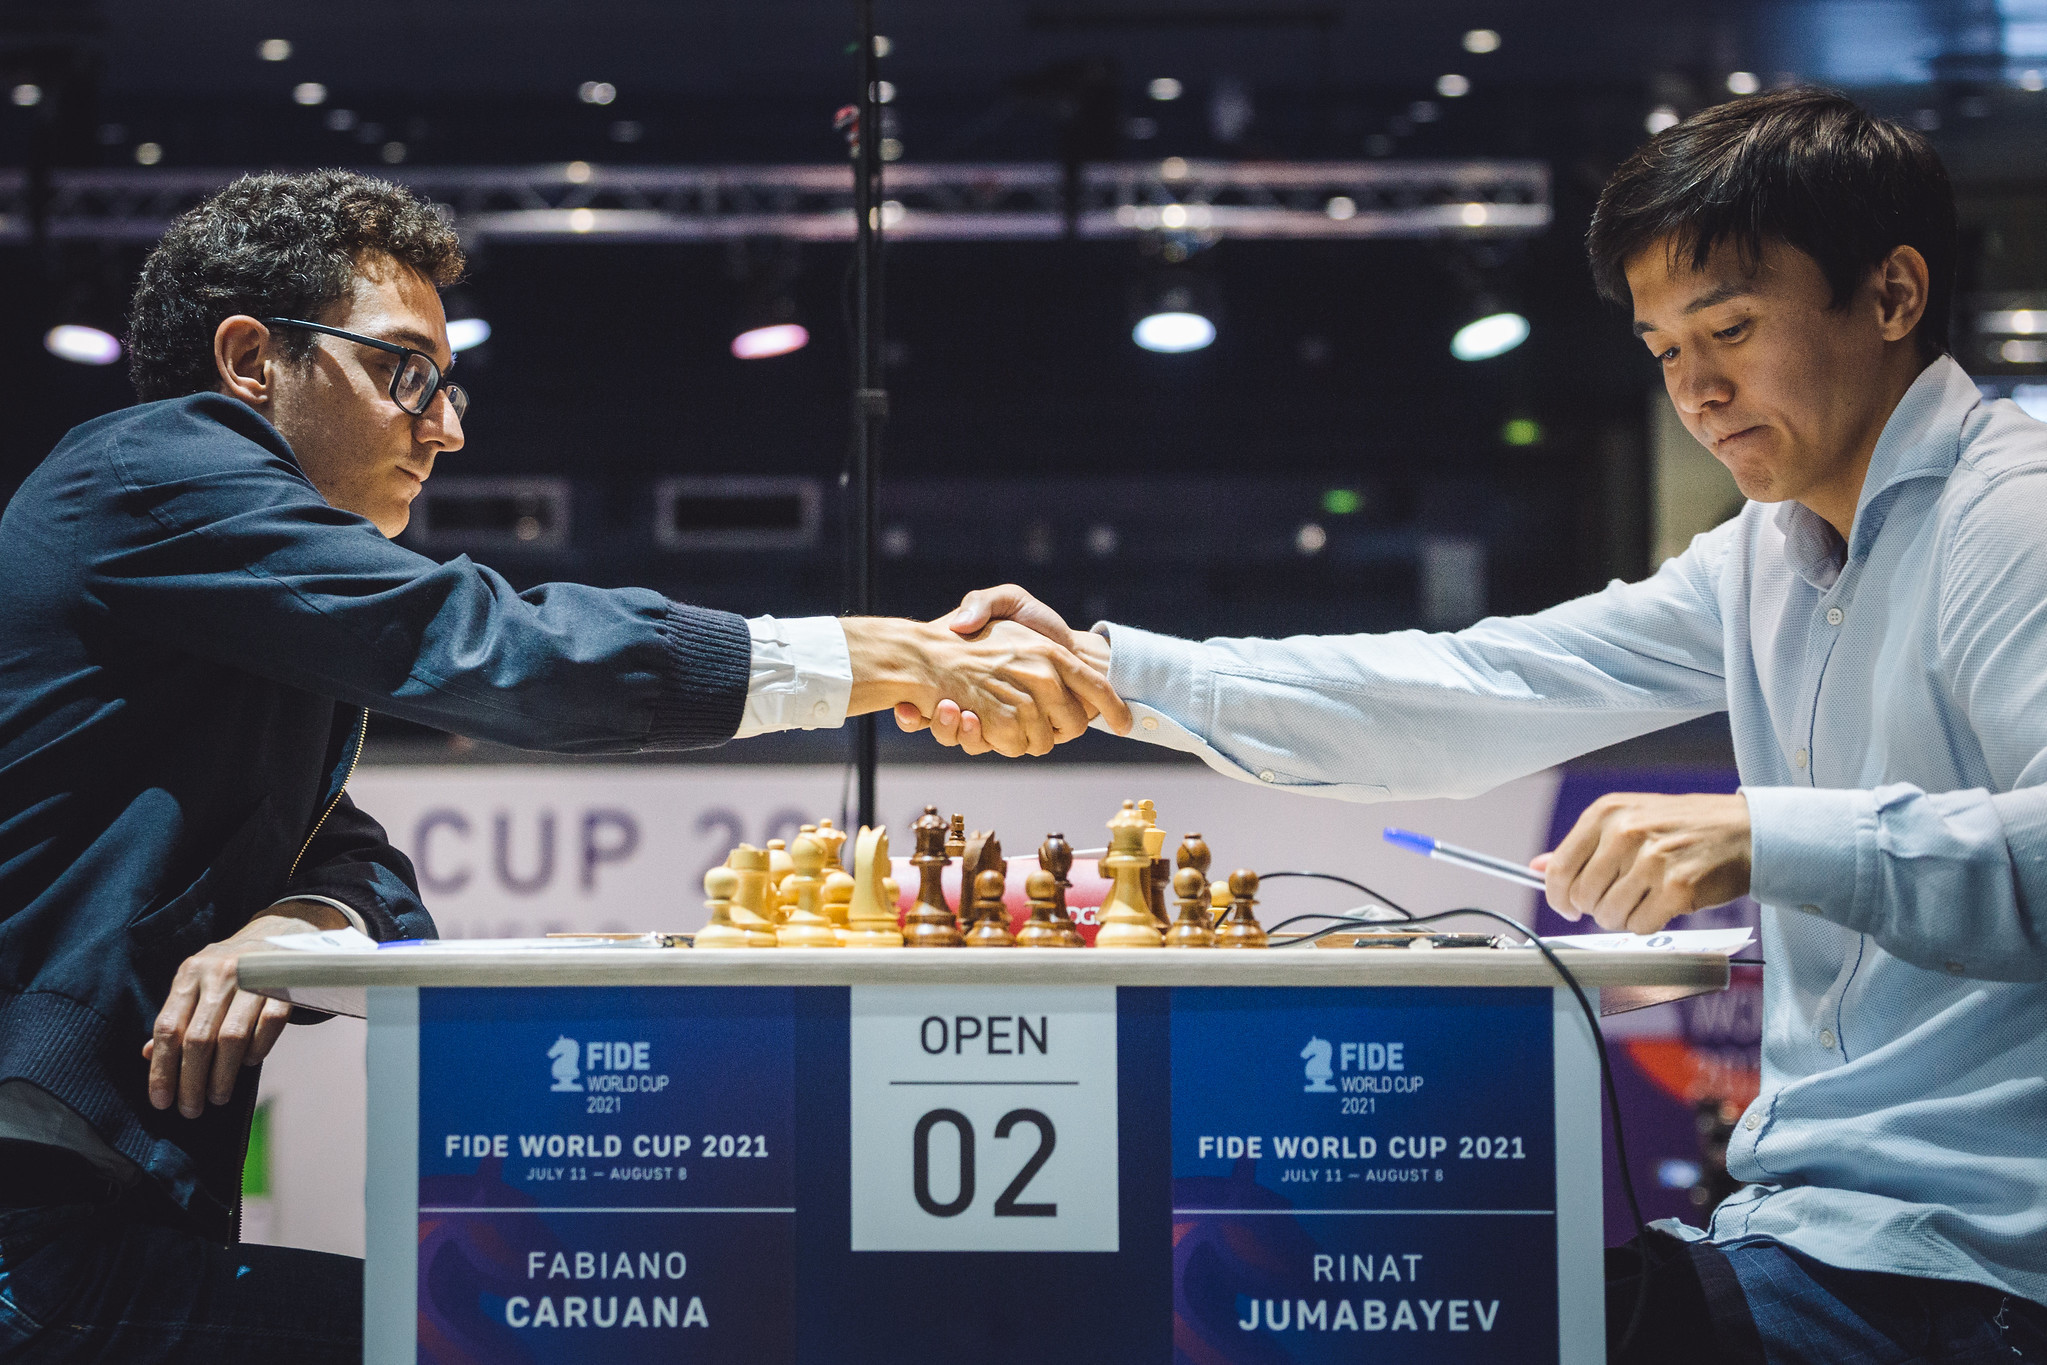 Carlsen cruises on at Chess World Cup as Caruana gets back into action after isolation